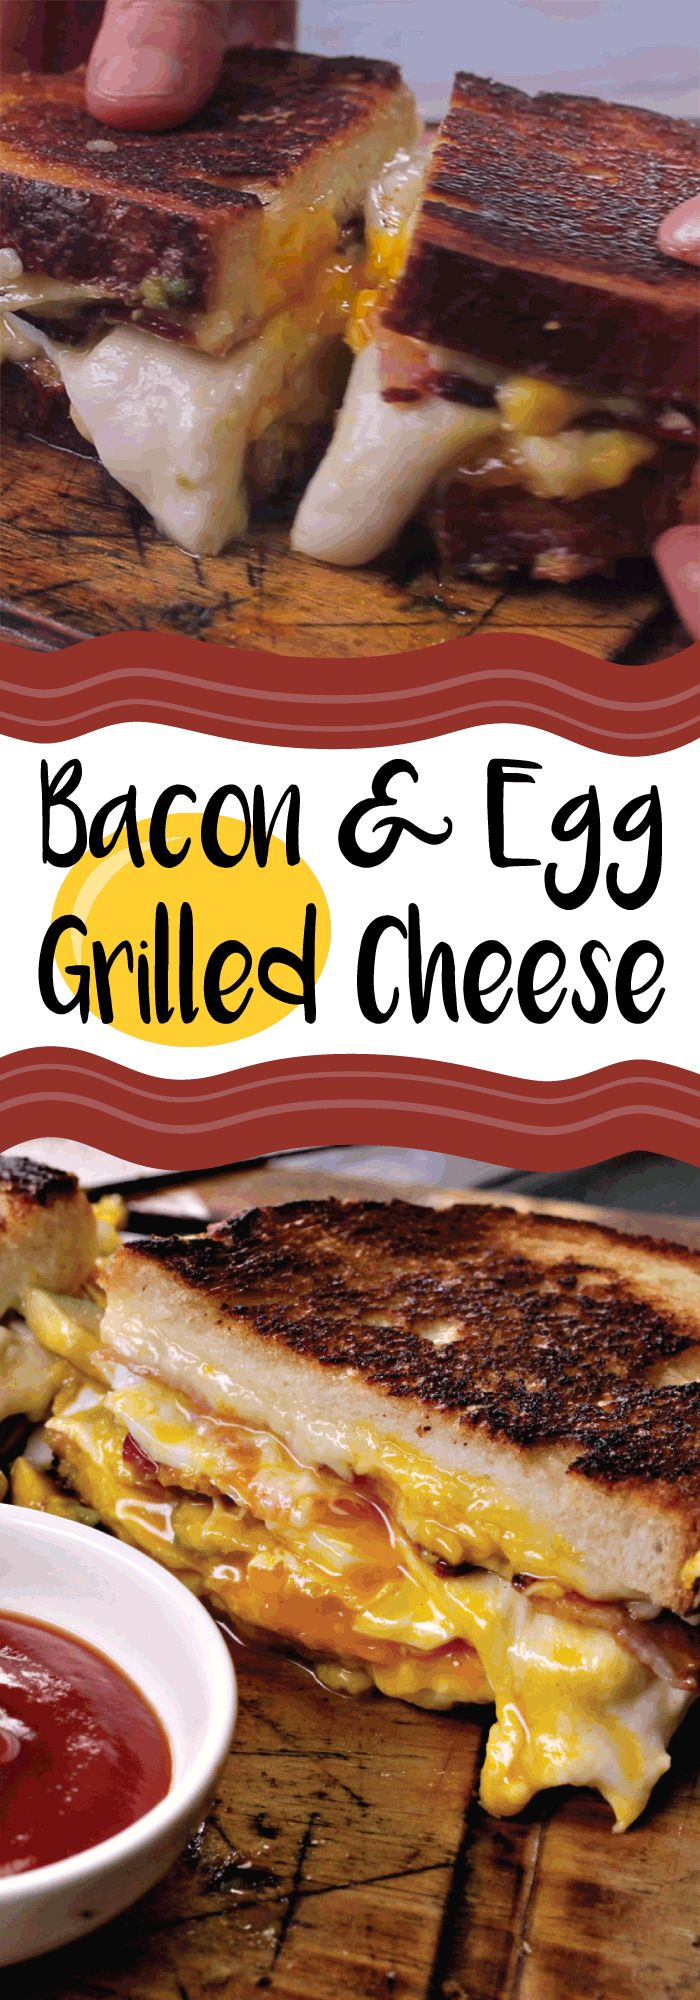 Twisted knows just how to take a grilled cheese to the next level by combining the trifecta that is bacon, egg, and cheese, and stuffing it between two buttery slices of bread. Along with avocado, it's got both cheddar and mozzarella cheese, making it one hell of a grilled cheese sandy.